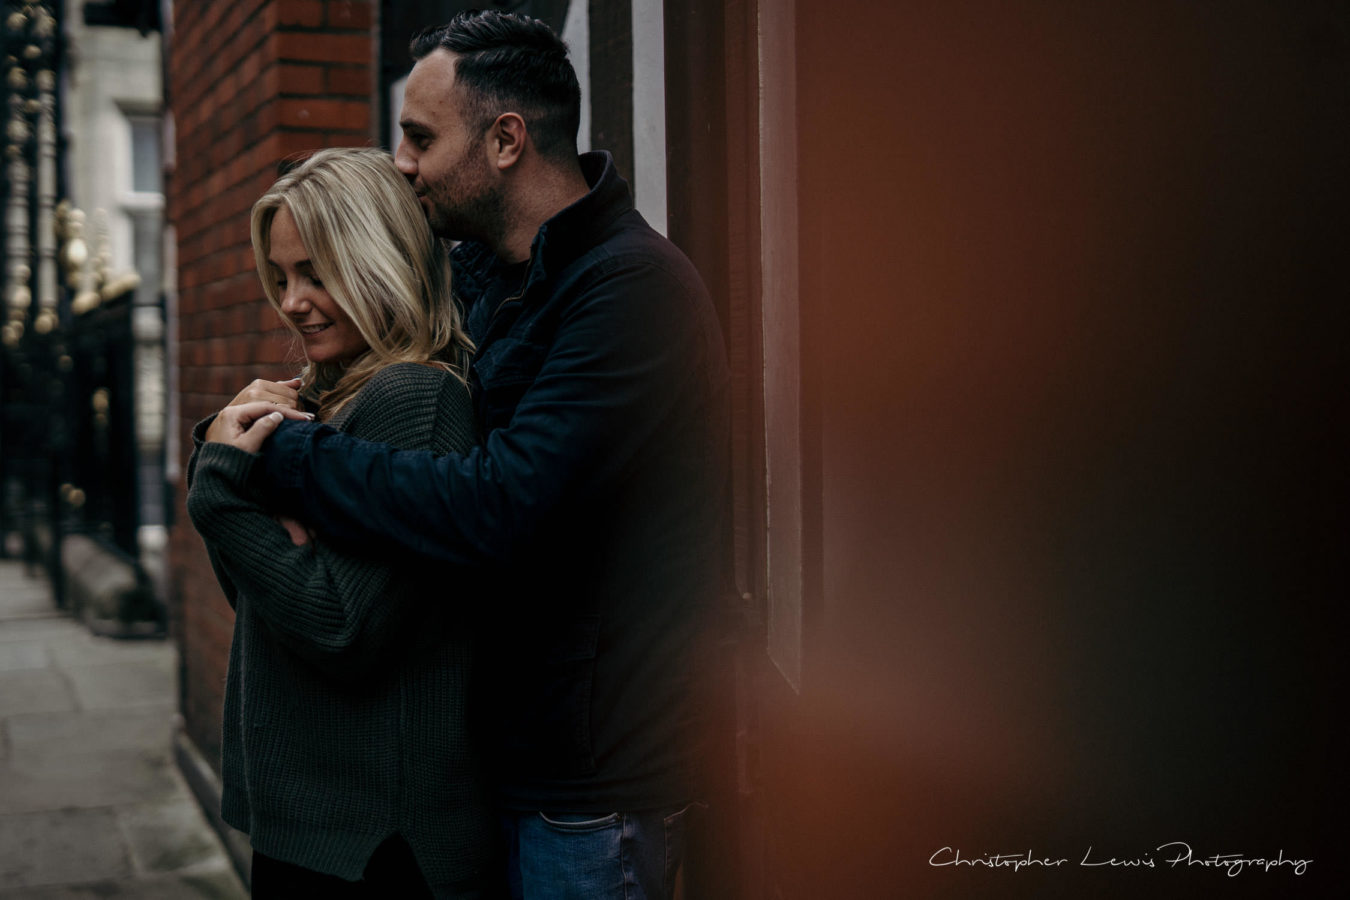 Chester-Pre-Wedding-Shoot-Christopher-Lewis-Photography-17